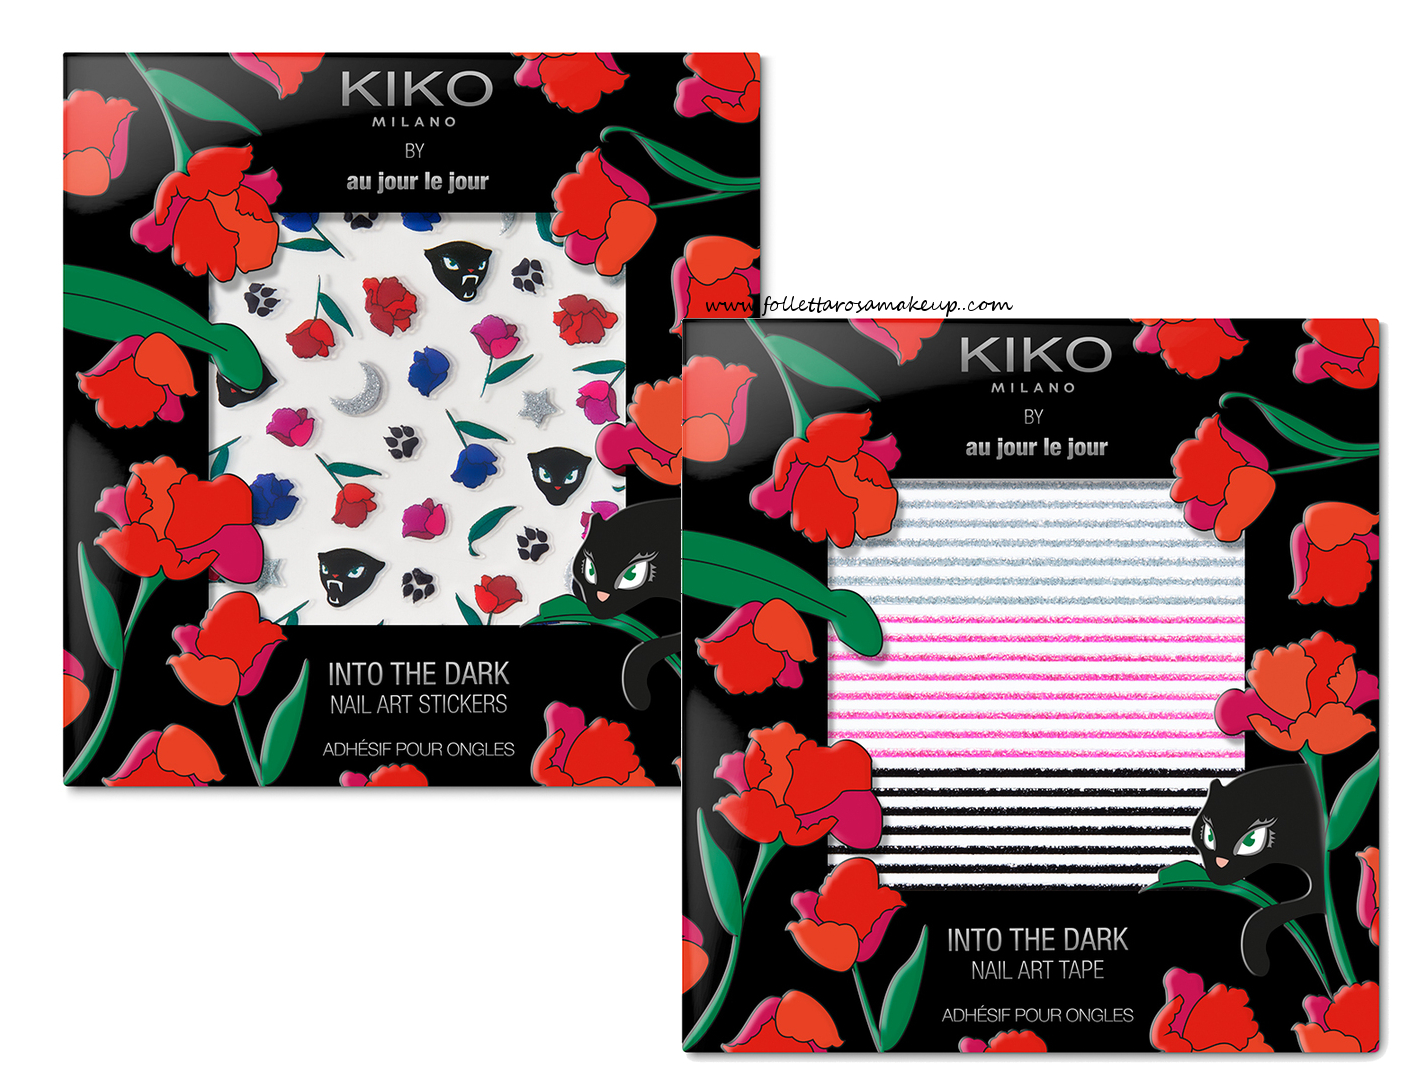 kiko-into-the-dark-stickers